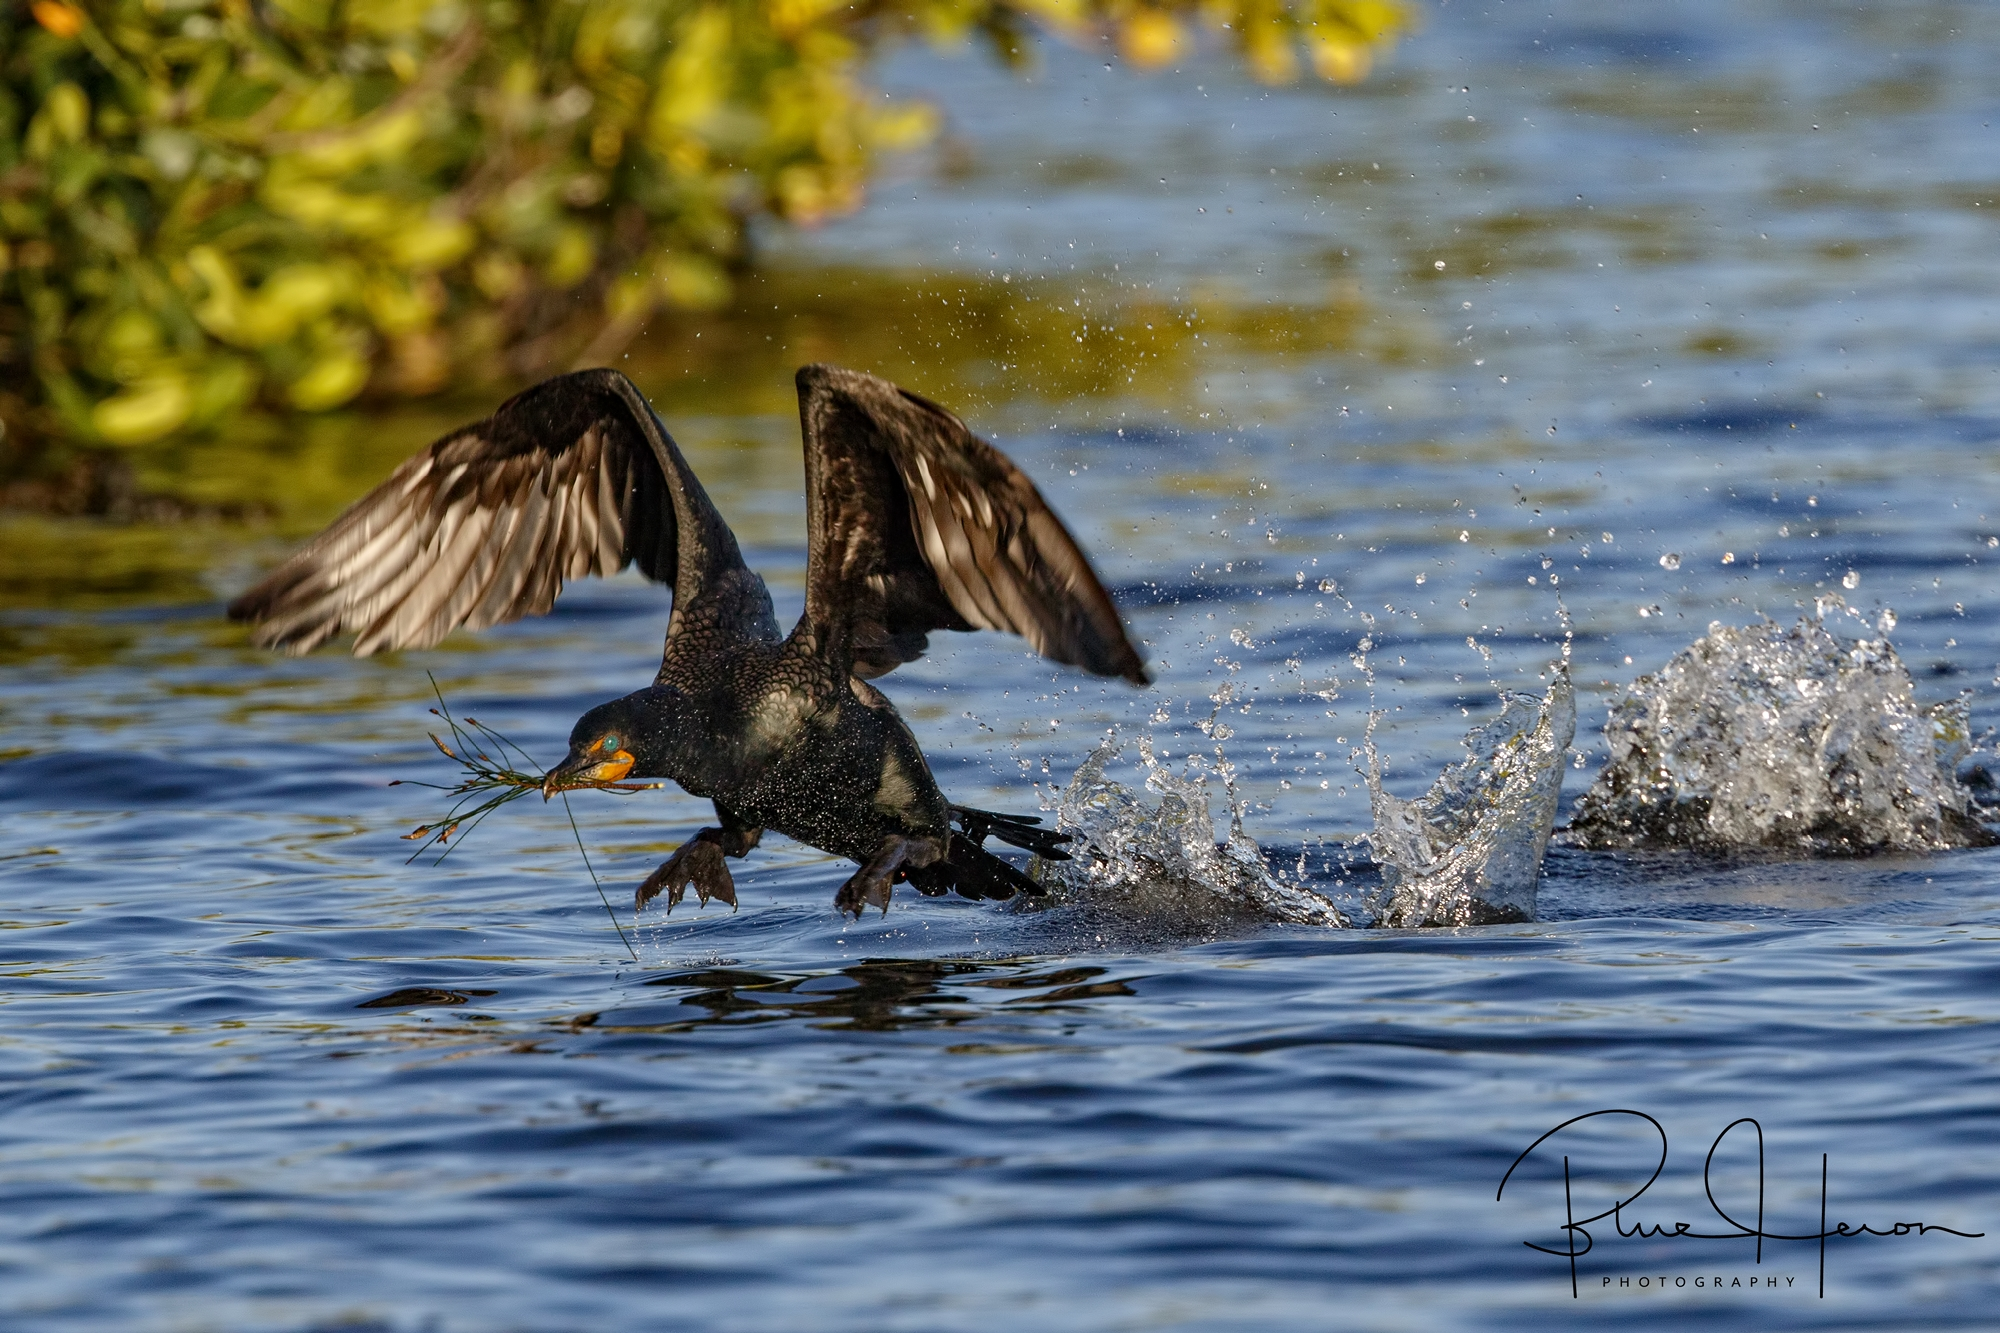 Cormorant lifting off with nesting material